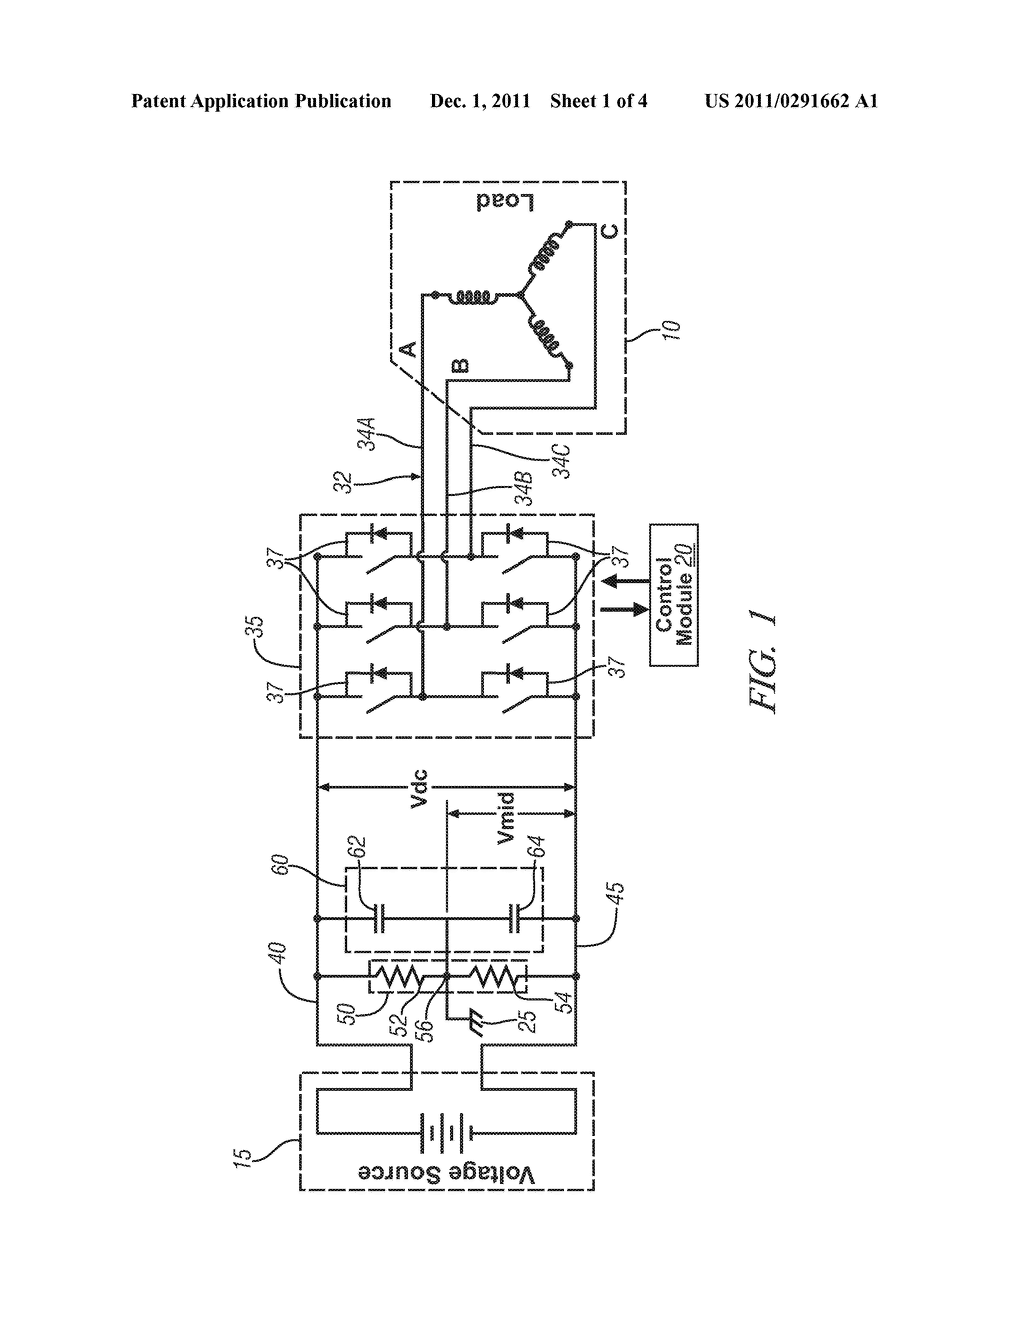 Method And Apparatus To Monitor Electric Isolation Of A High Voltage Wiring Diagram Direct Current Electrical Circuit Schematic Image 02